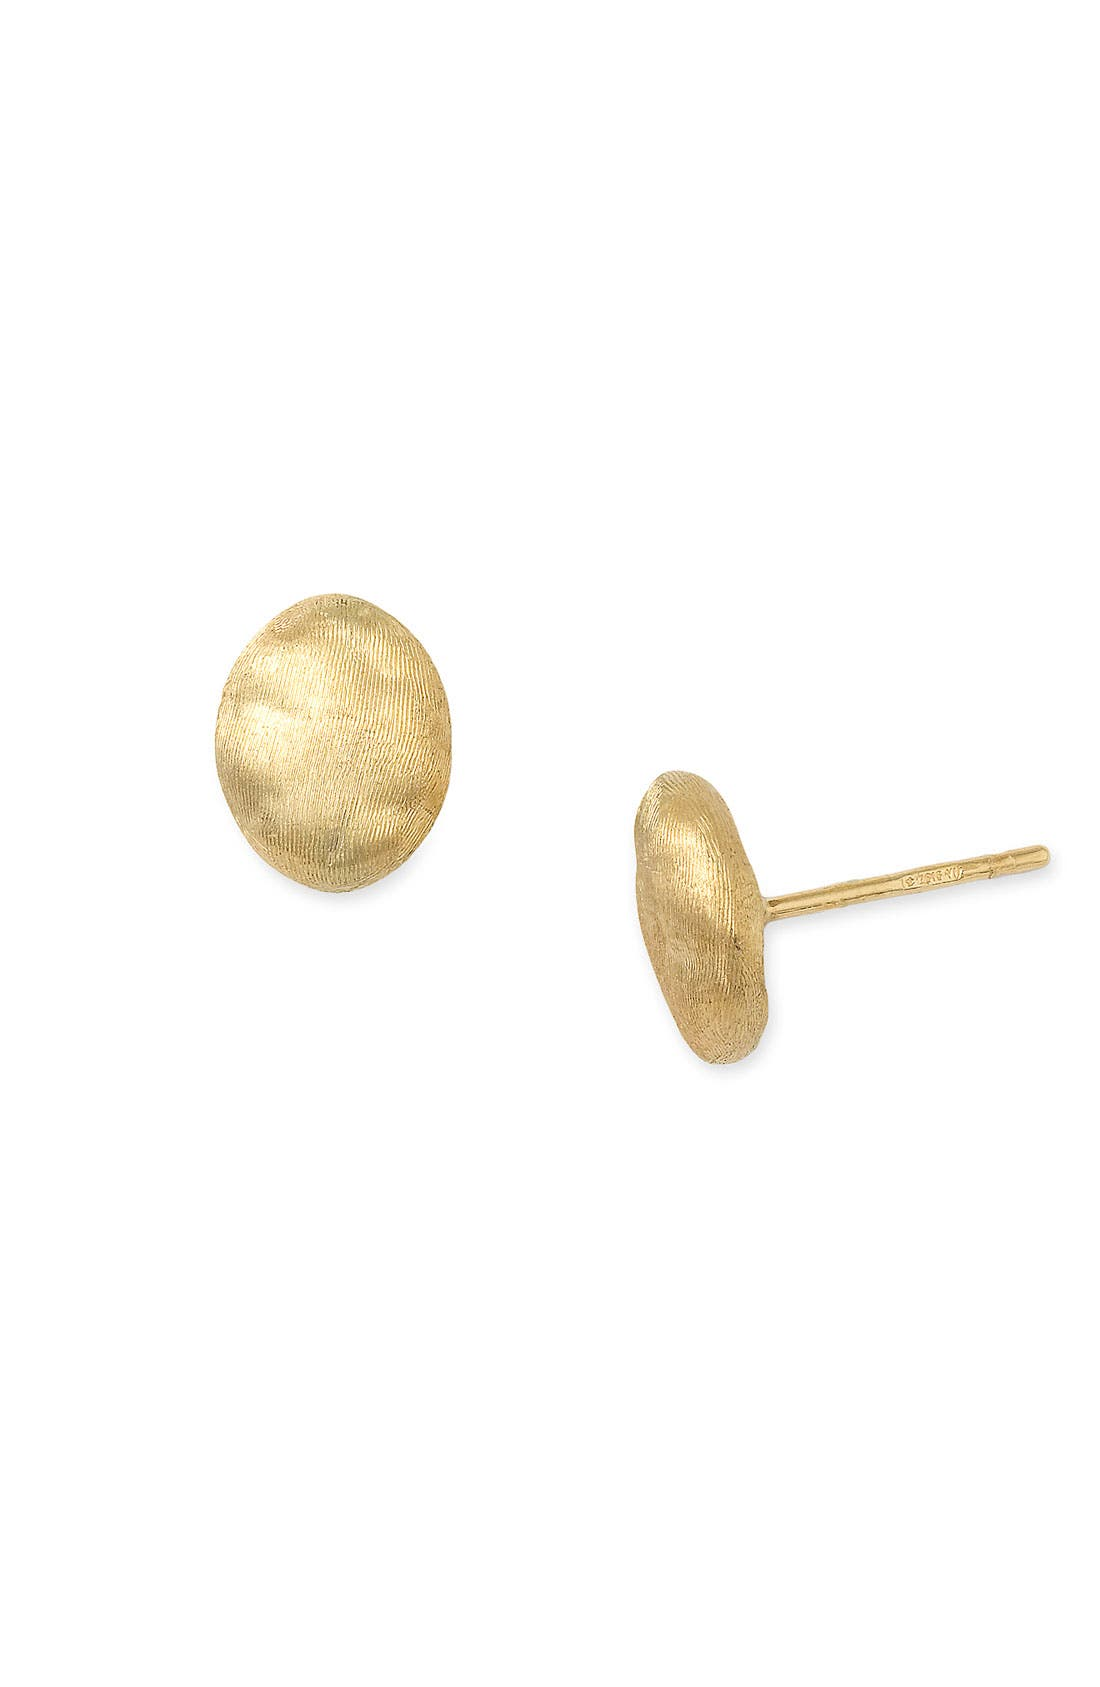 Marco Bicego 'Siviglia' Stud Earrings